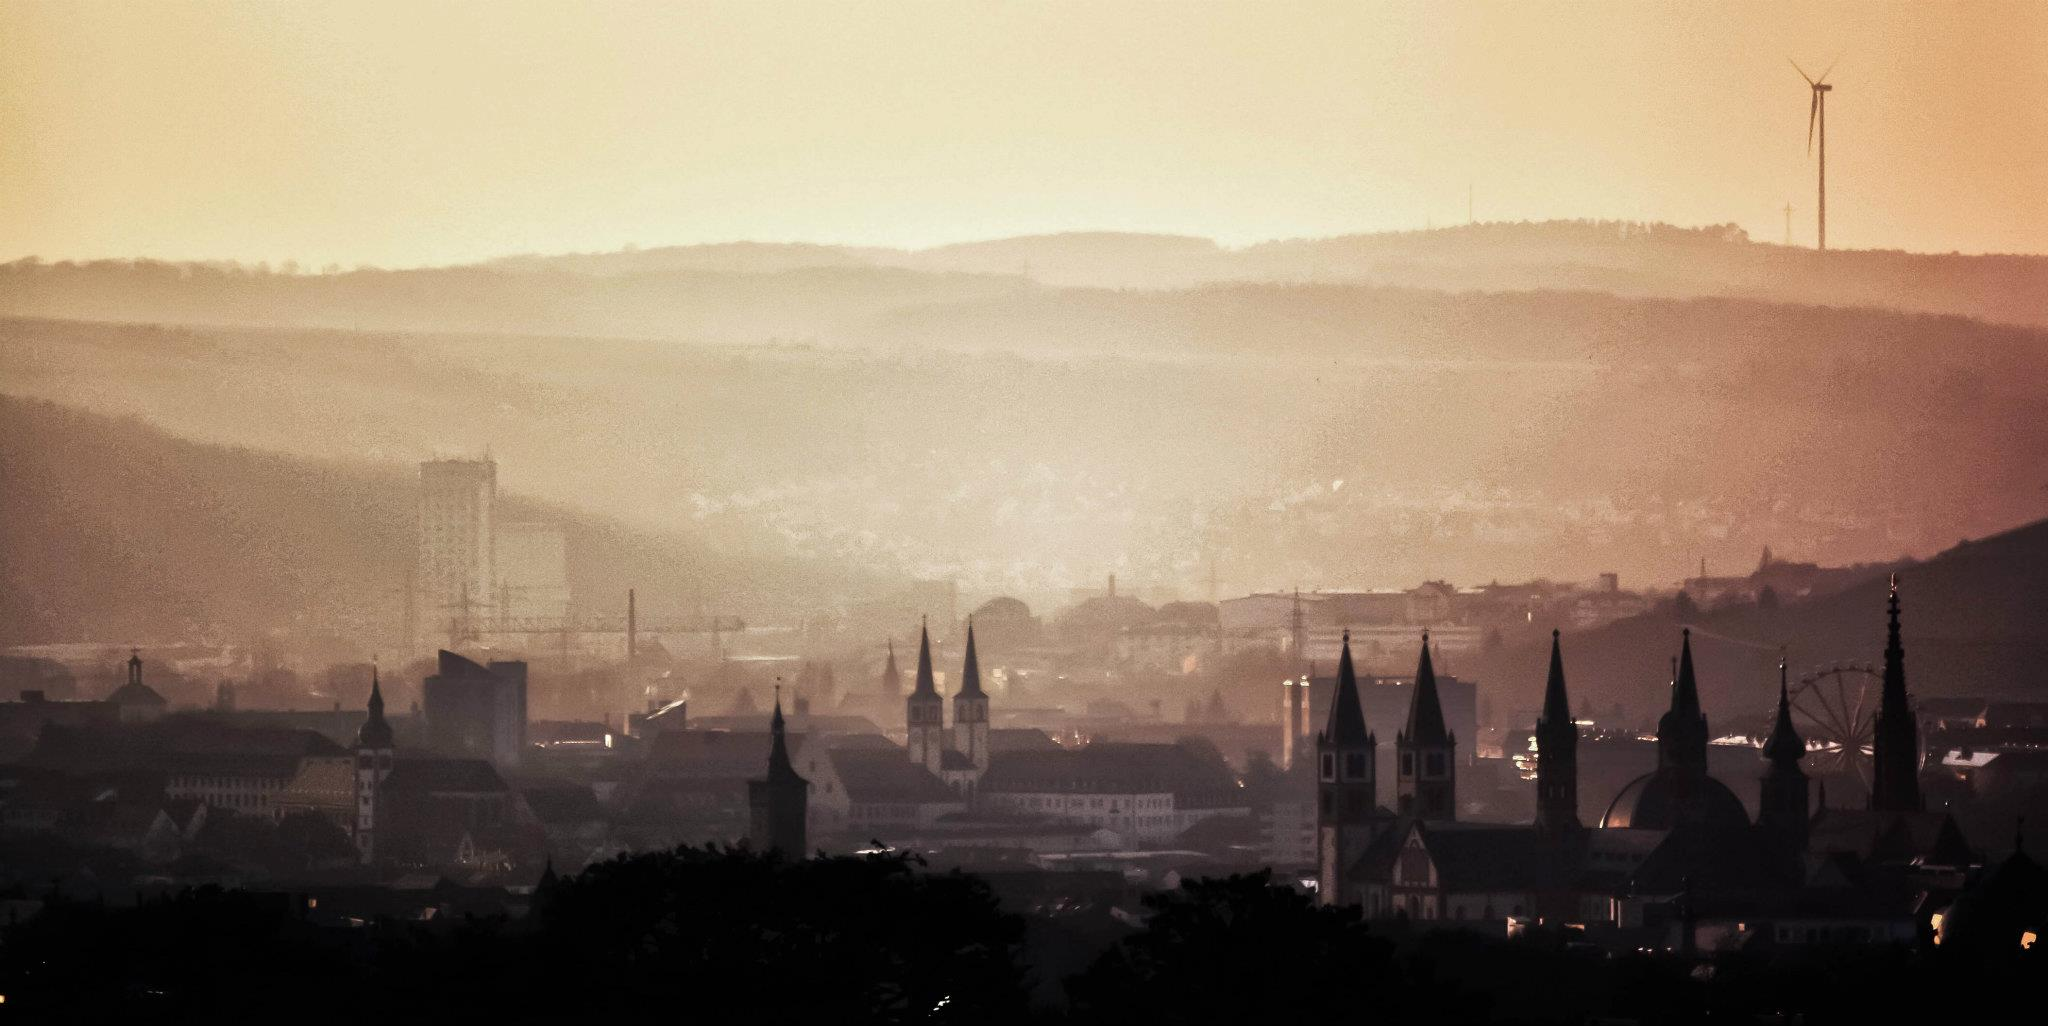 Picture of the city of Würzburg